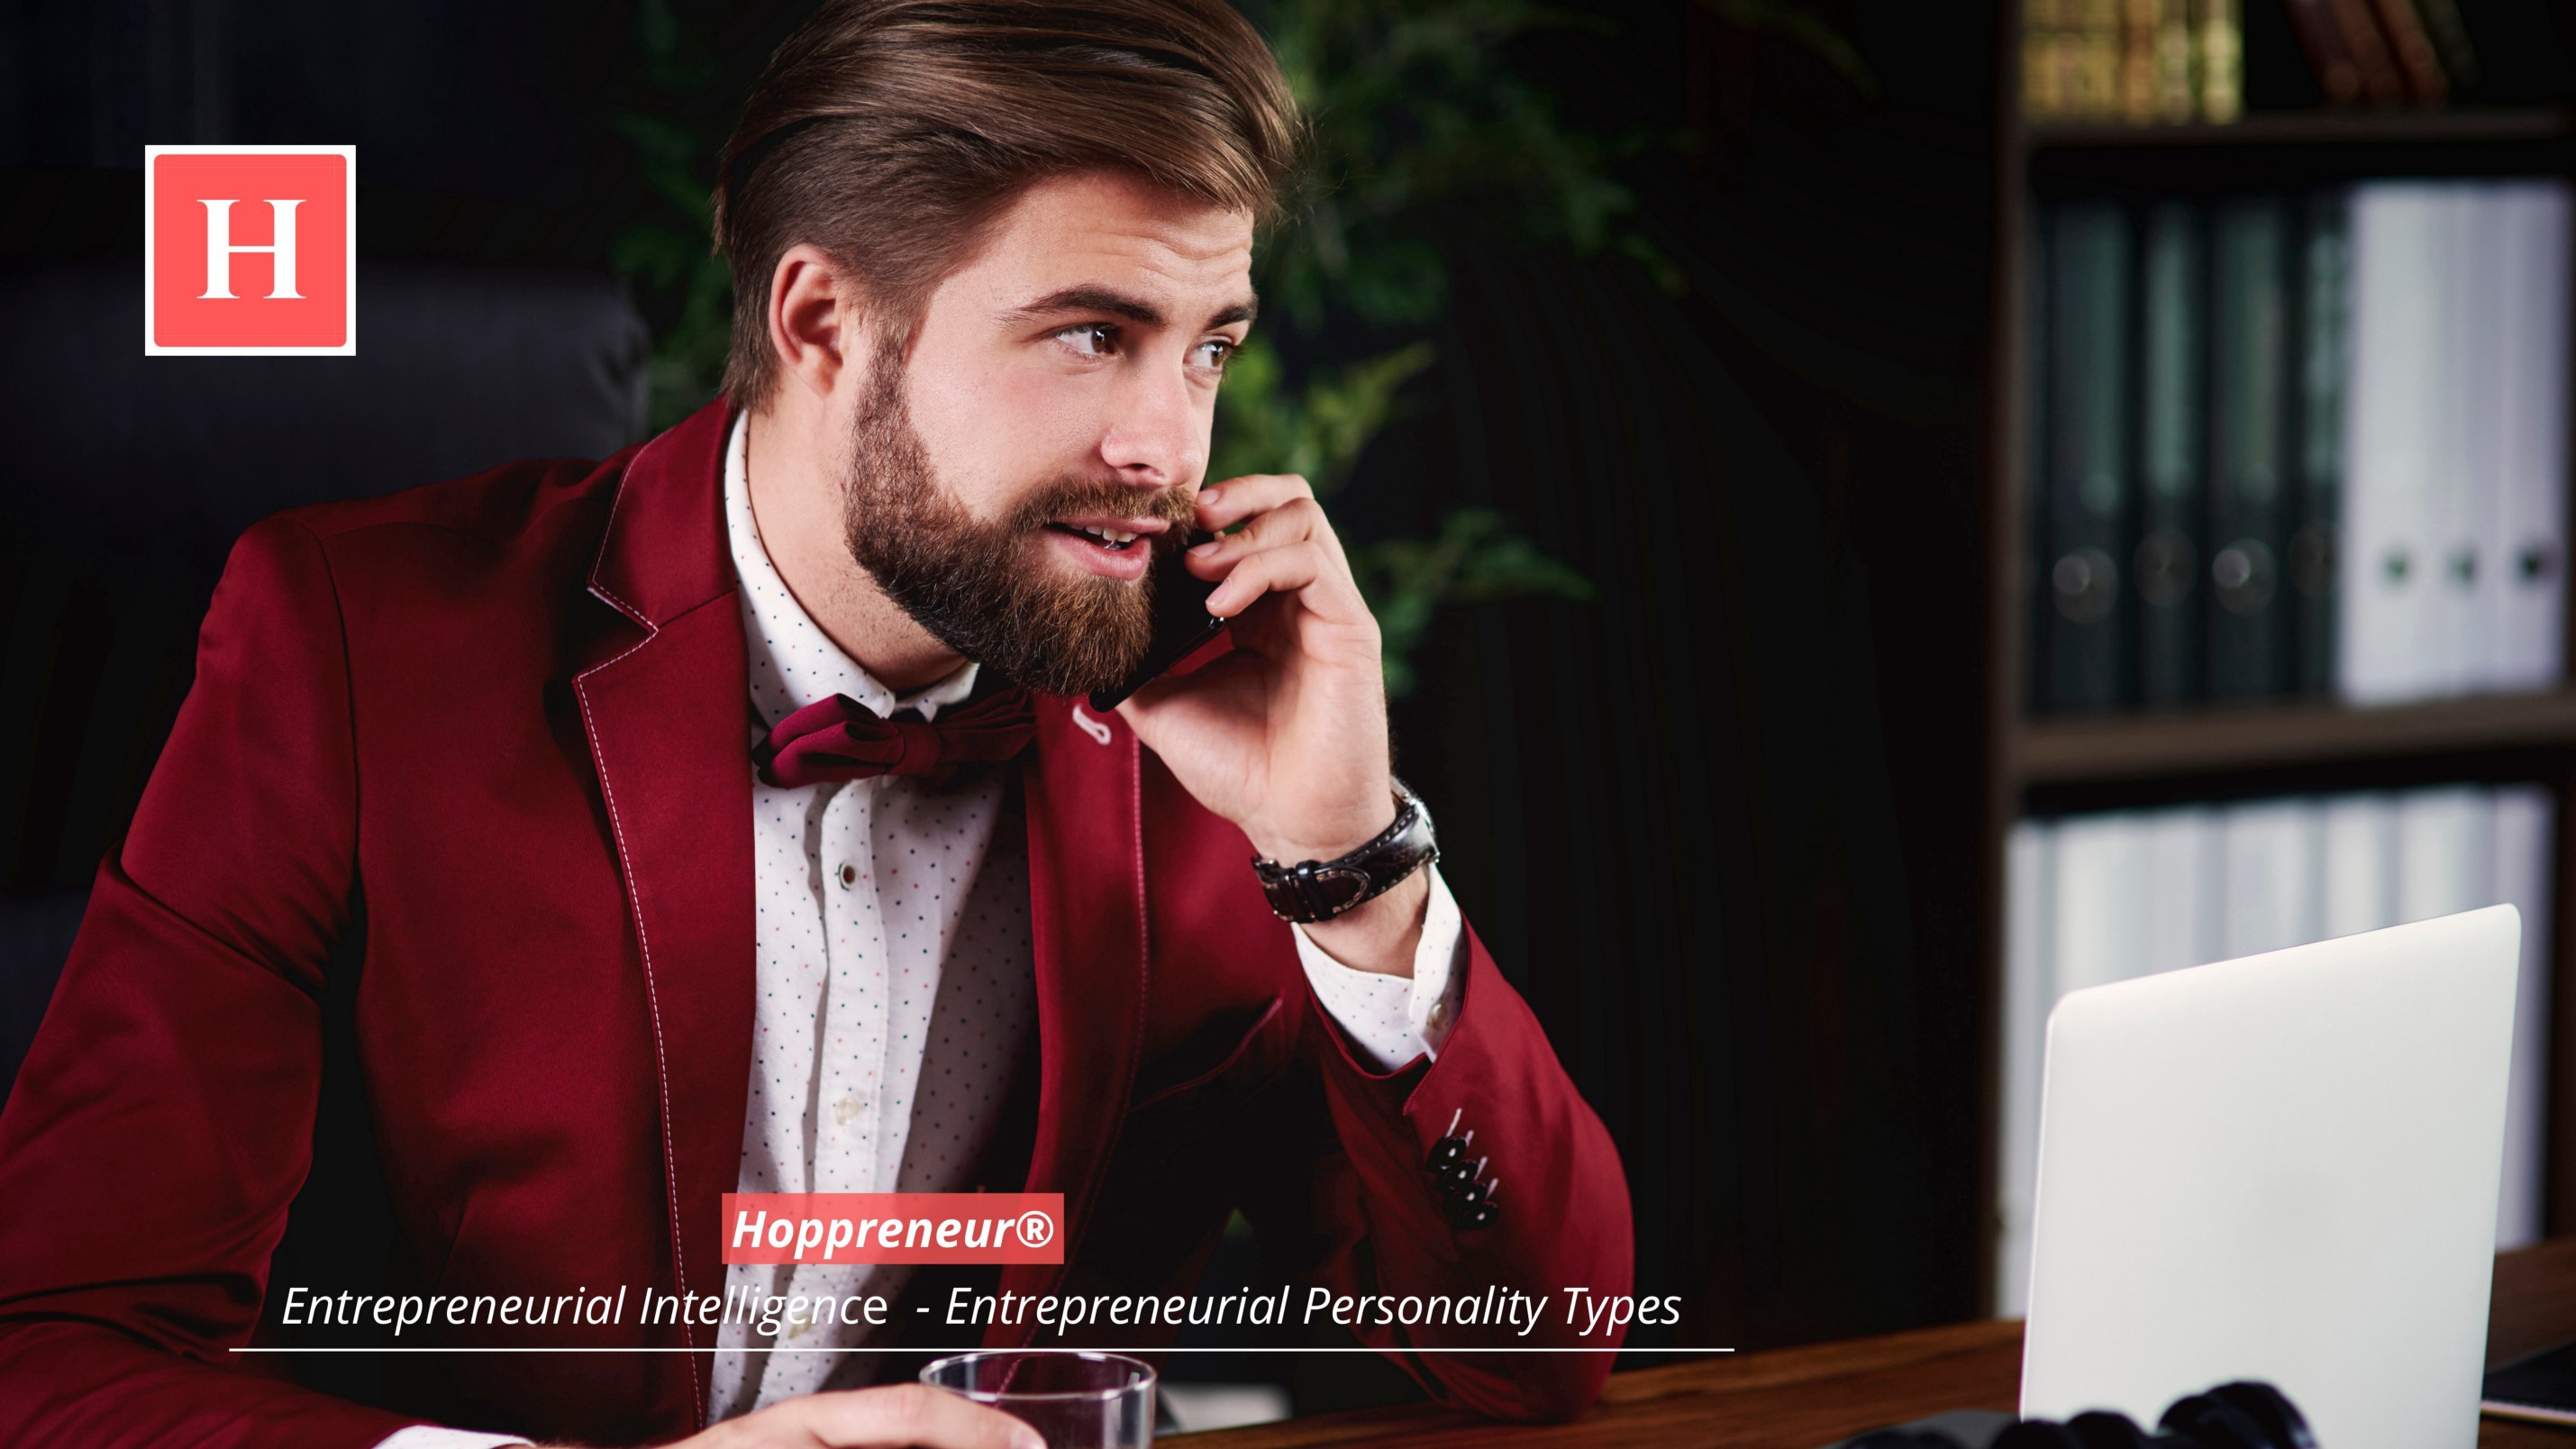 Eight entrepreneurial personality types: Follow these essential and must-develop personality traits if you want to start an entrepreneurial career and become a successful entrepreneur: Entrepreneurial intelligence/Entrepreneurial personalities/Hoppreneur